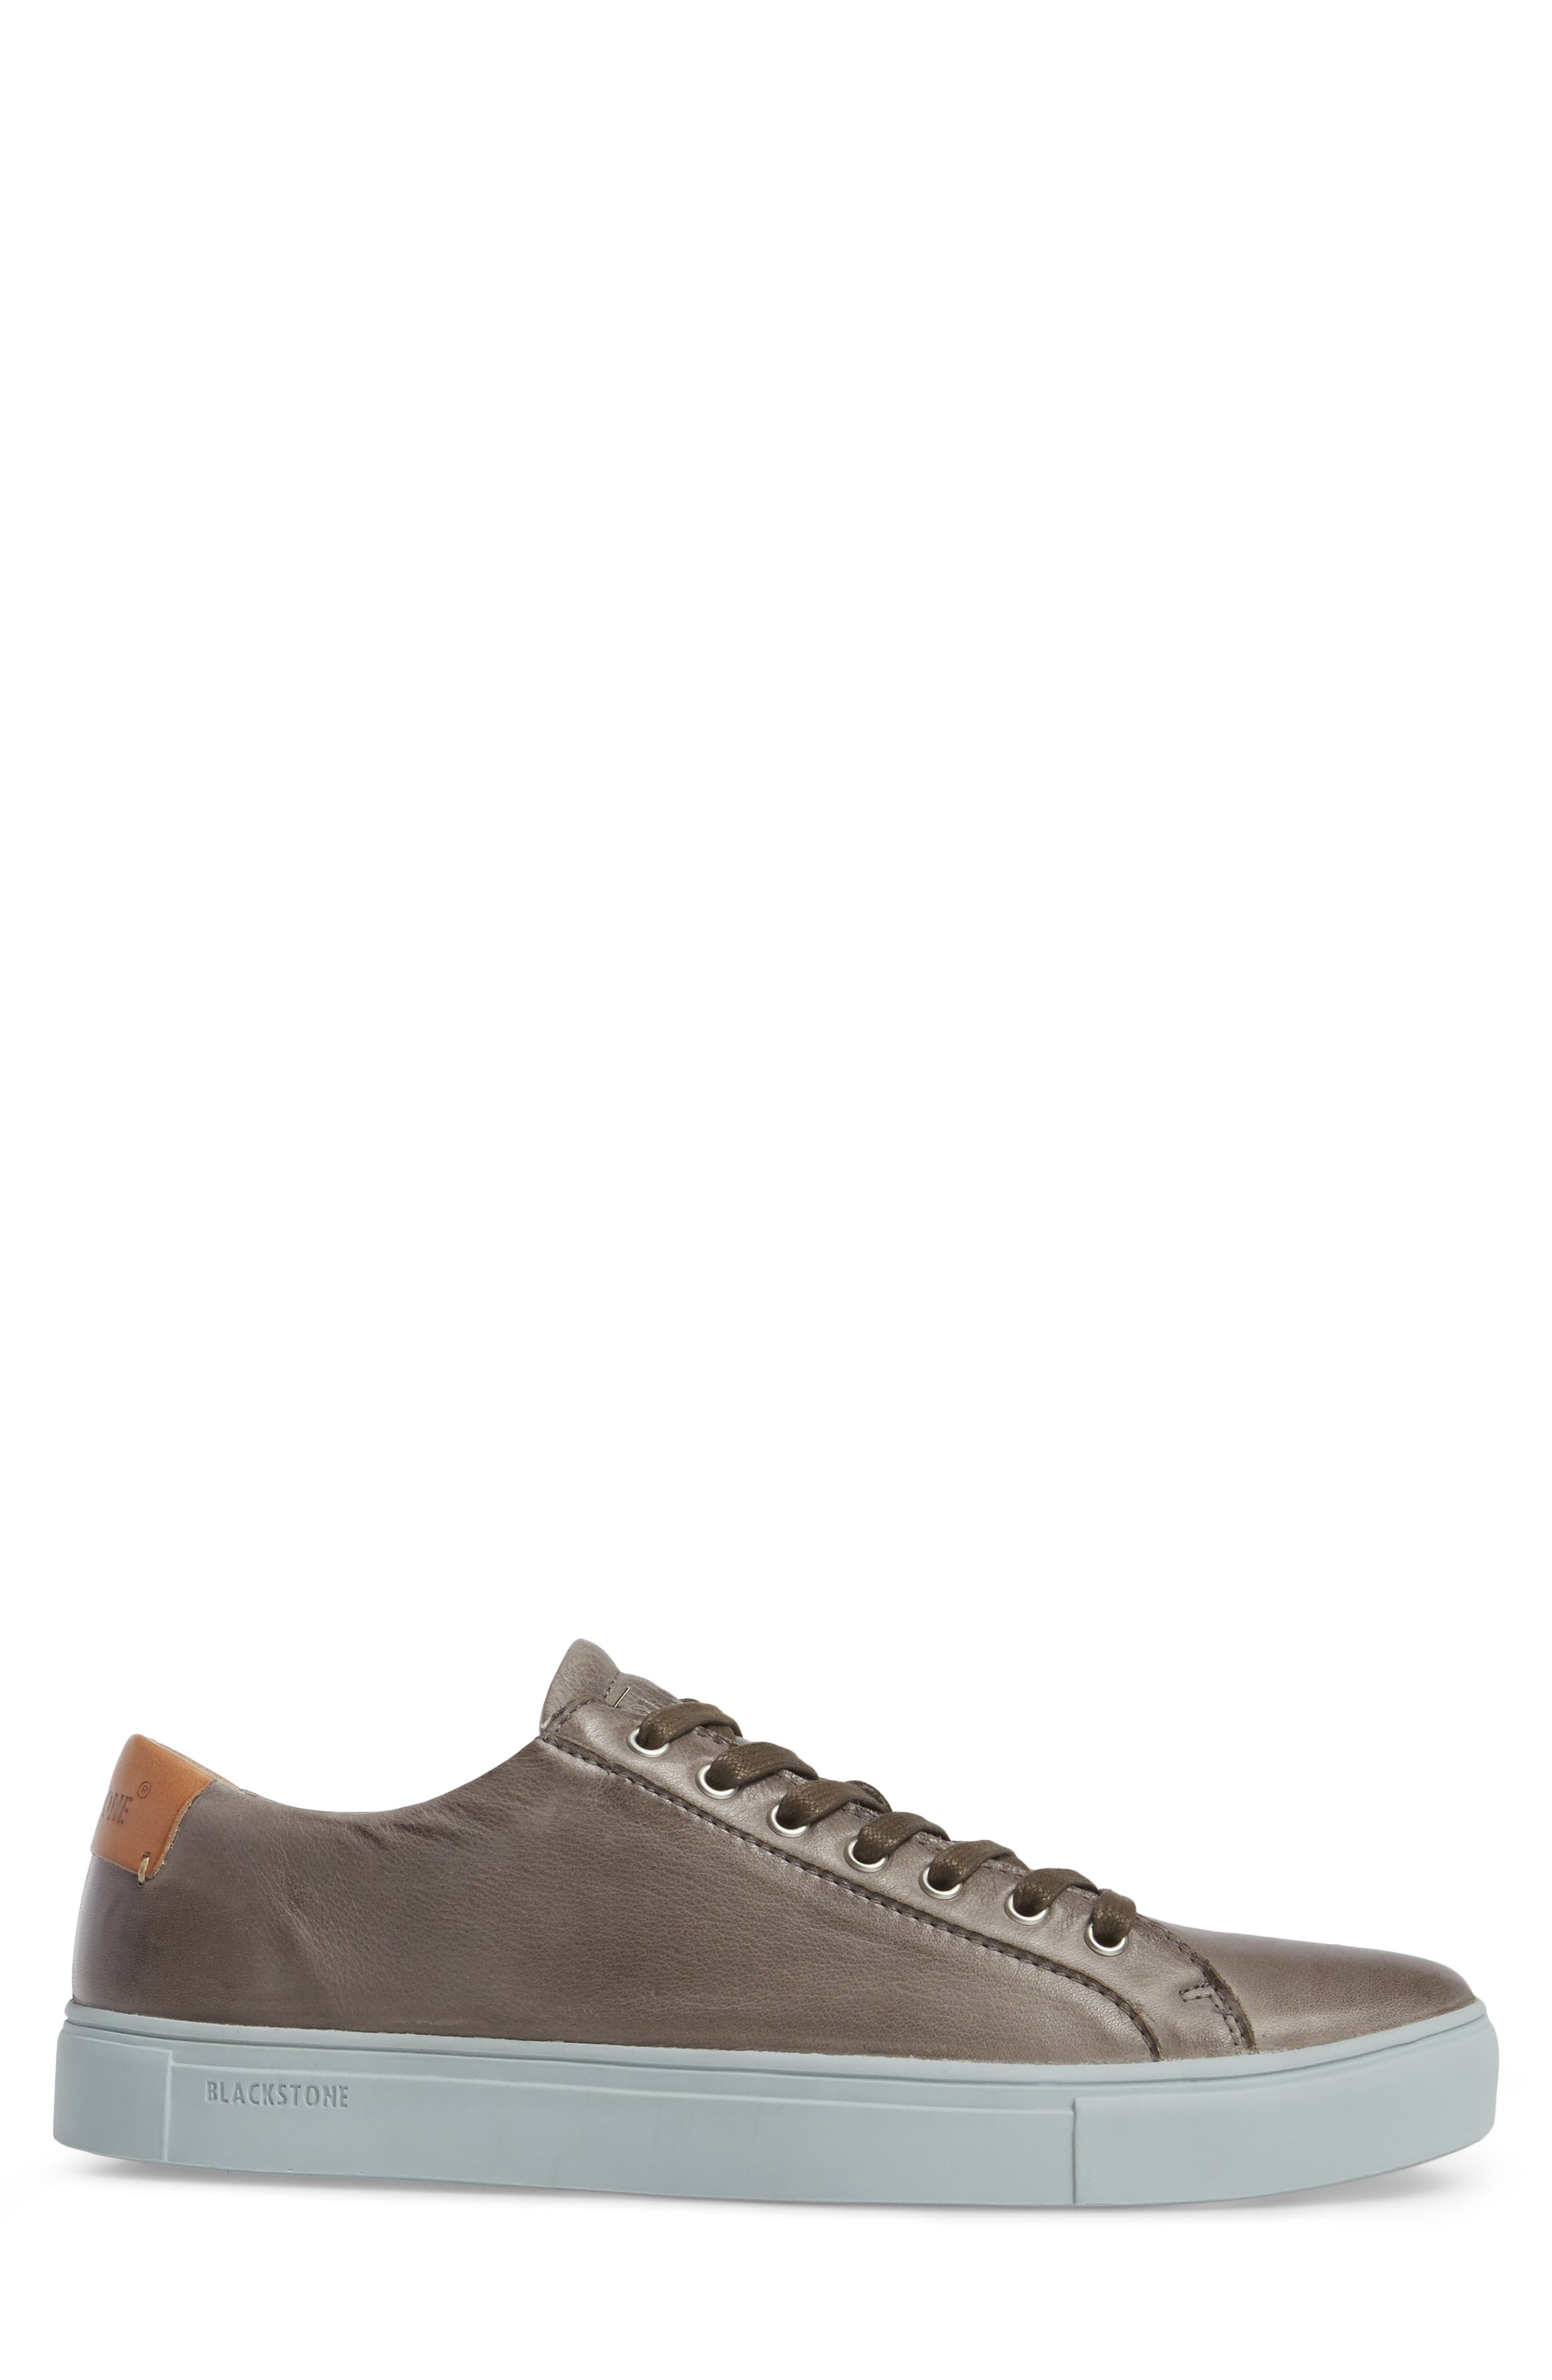 NM01 7 Eyelet Sneaker,                             Alternate thumbnail 3, color,                             Charcoal Leather